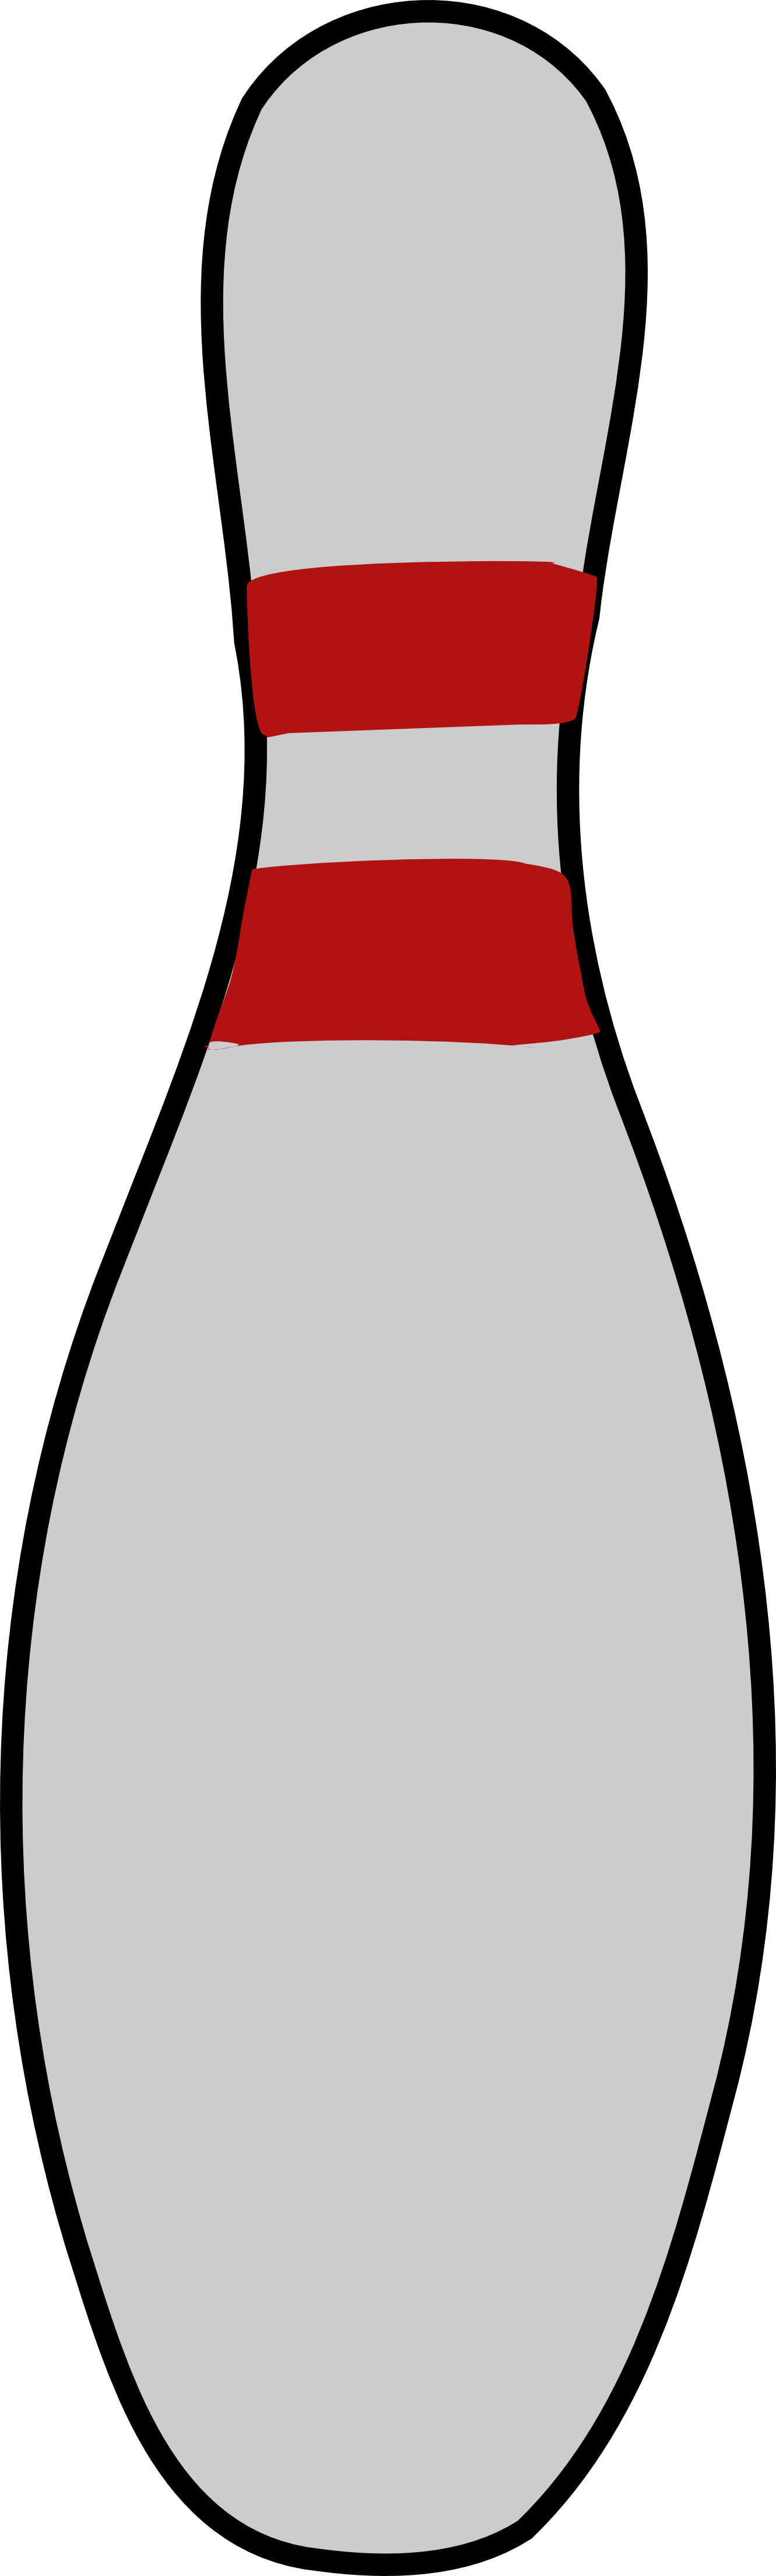 Bowling Pin 3 Coloring Book C - Bowling Pin Clipart